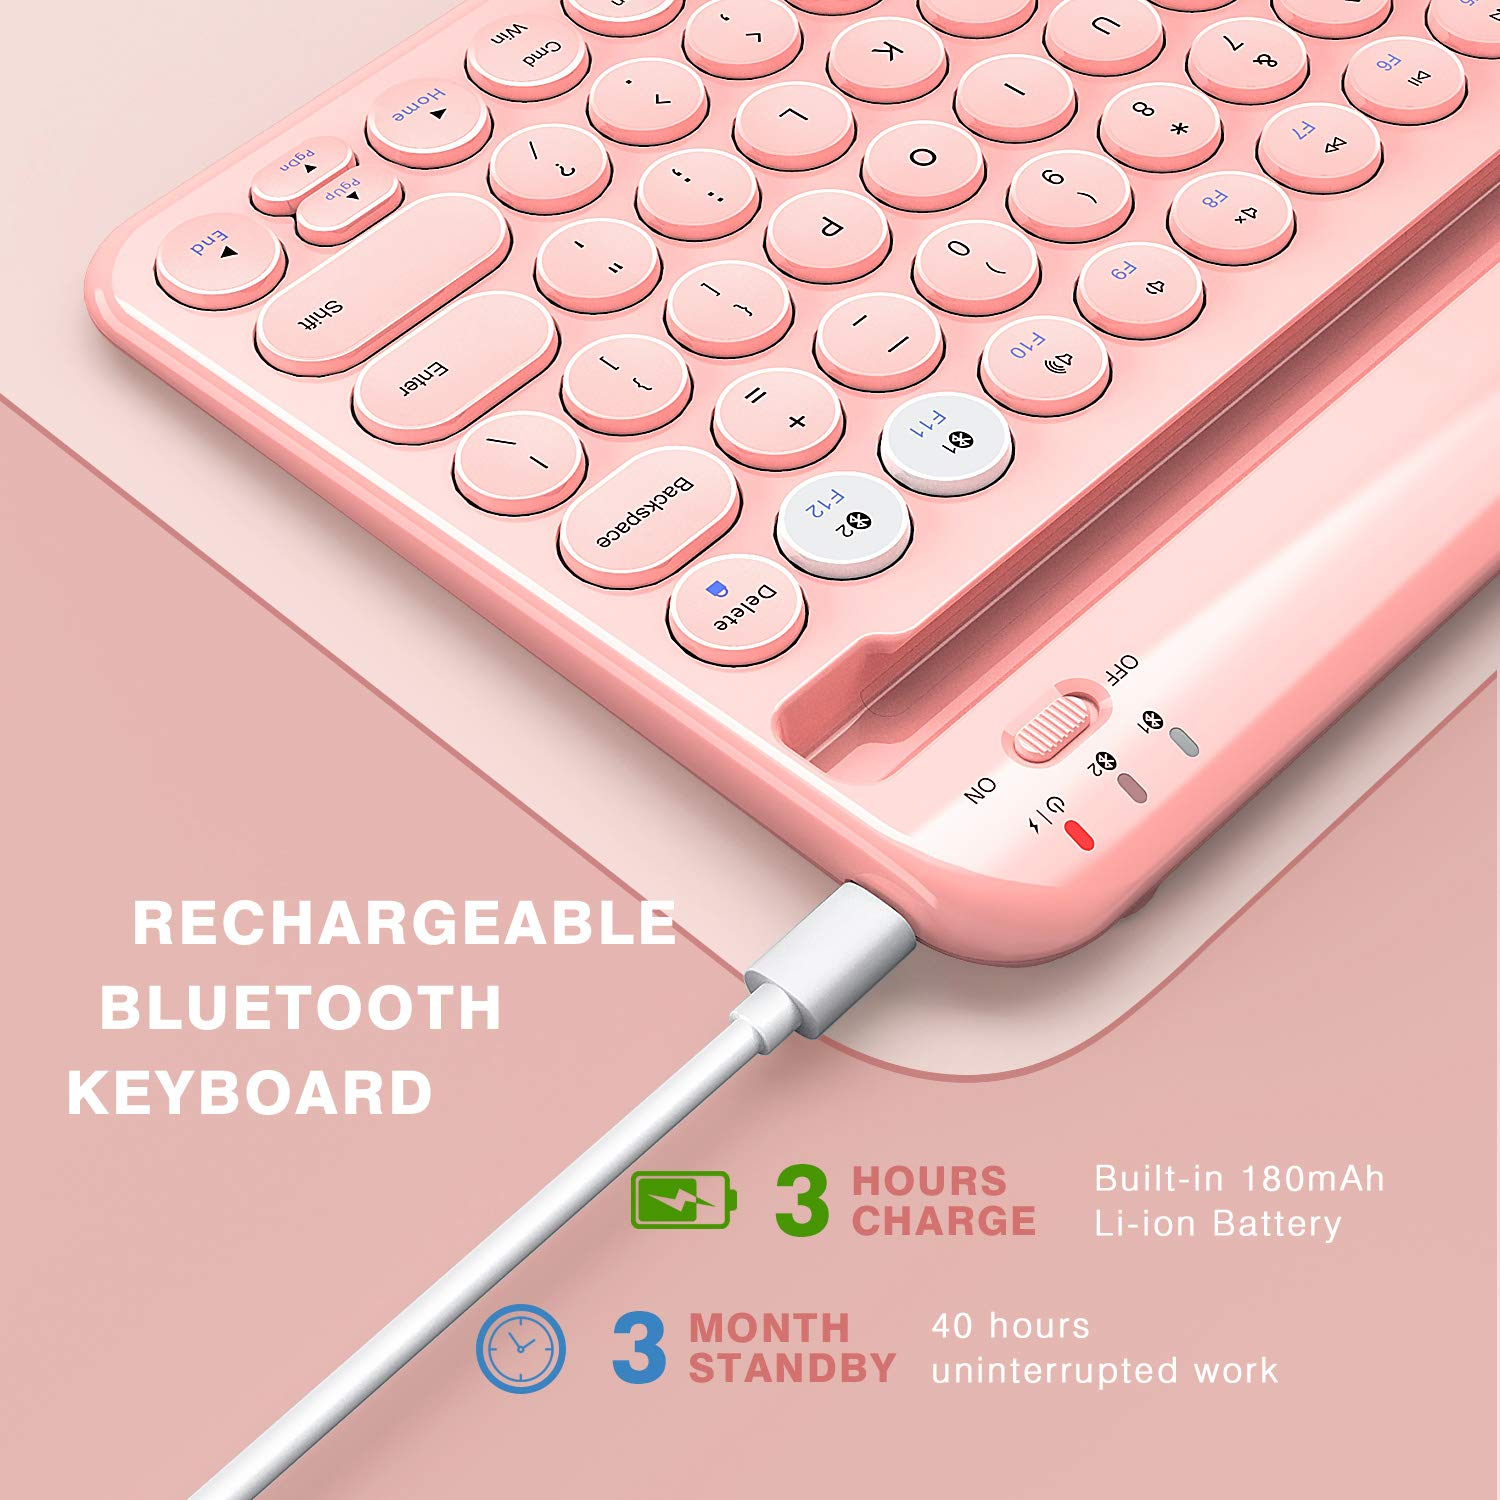 ghdonat.com Keyboards, Mice & Accessories Computer Accessories ...